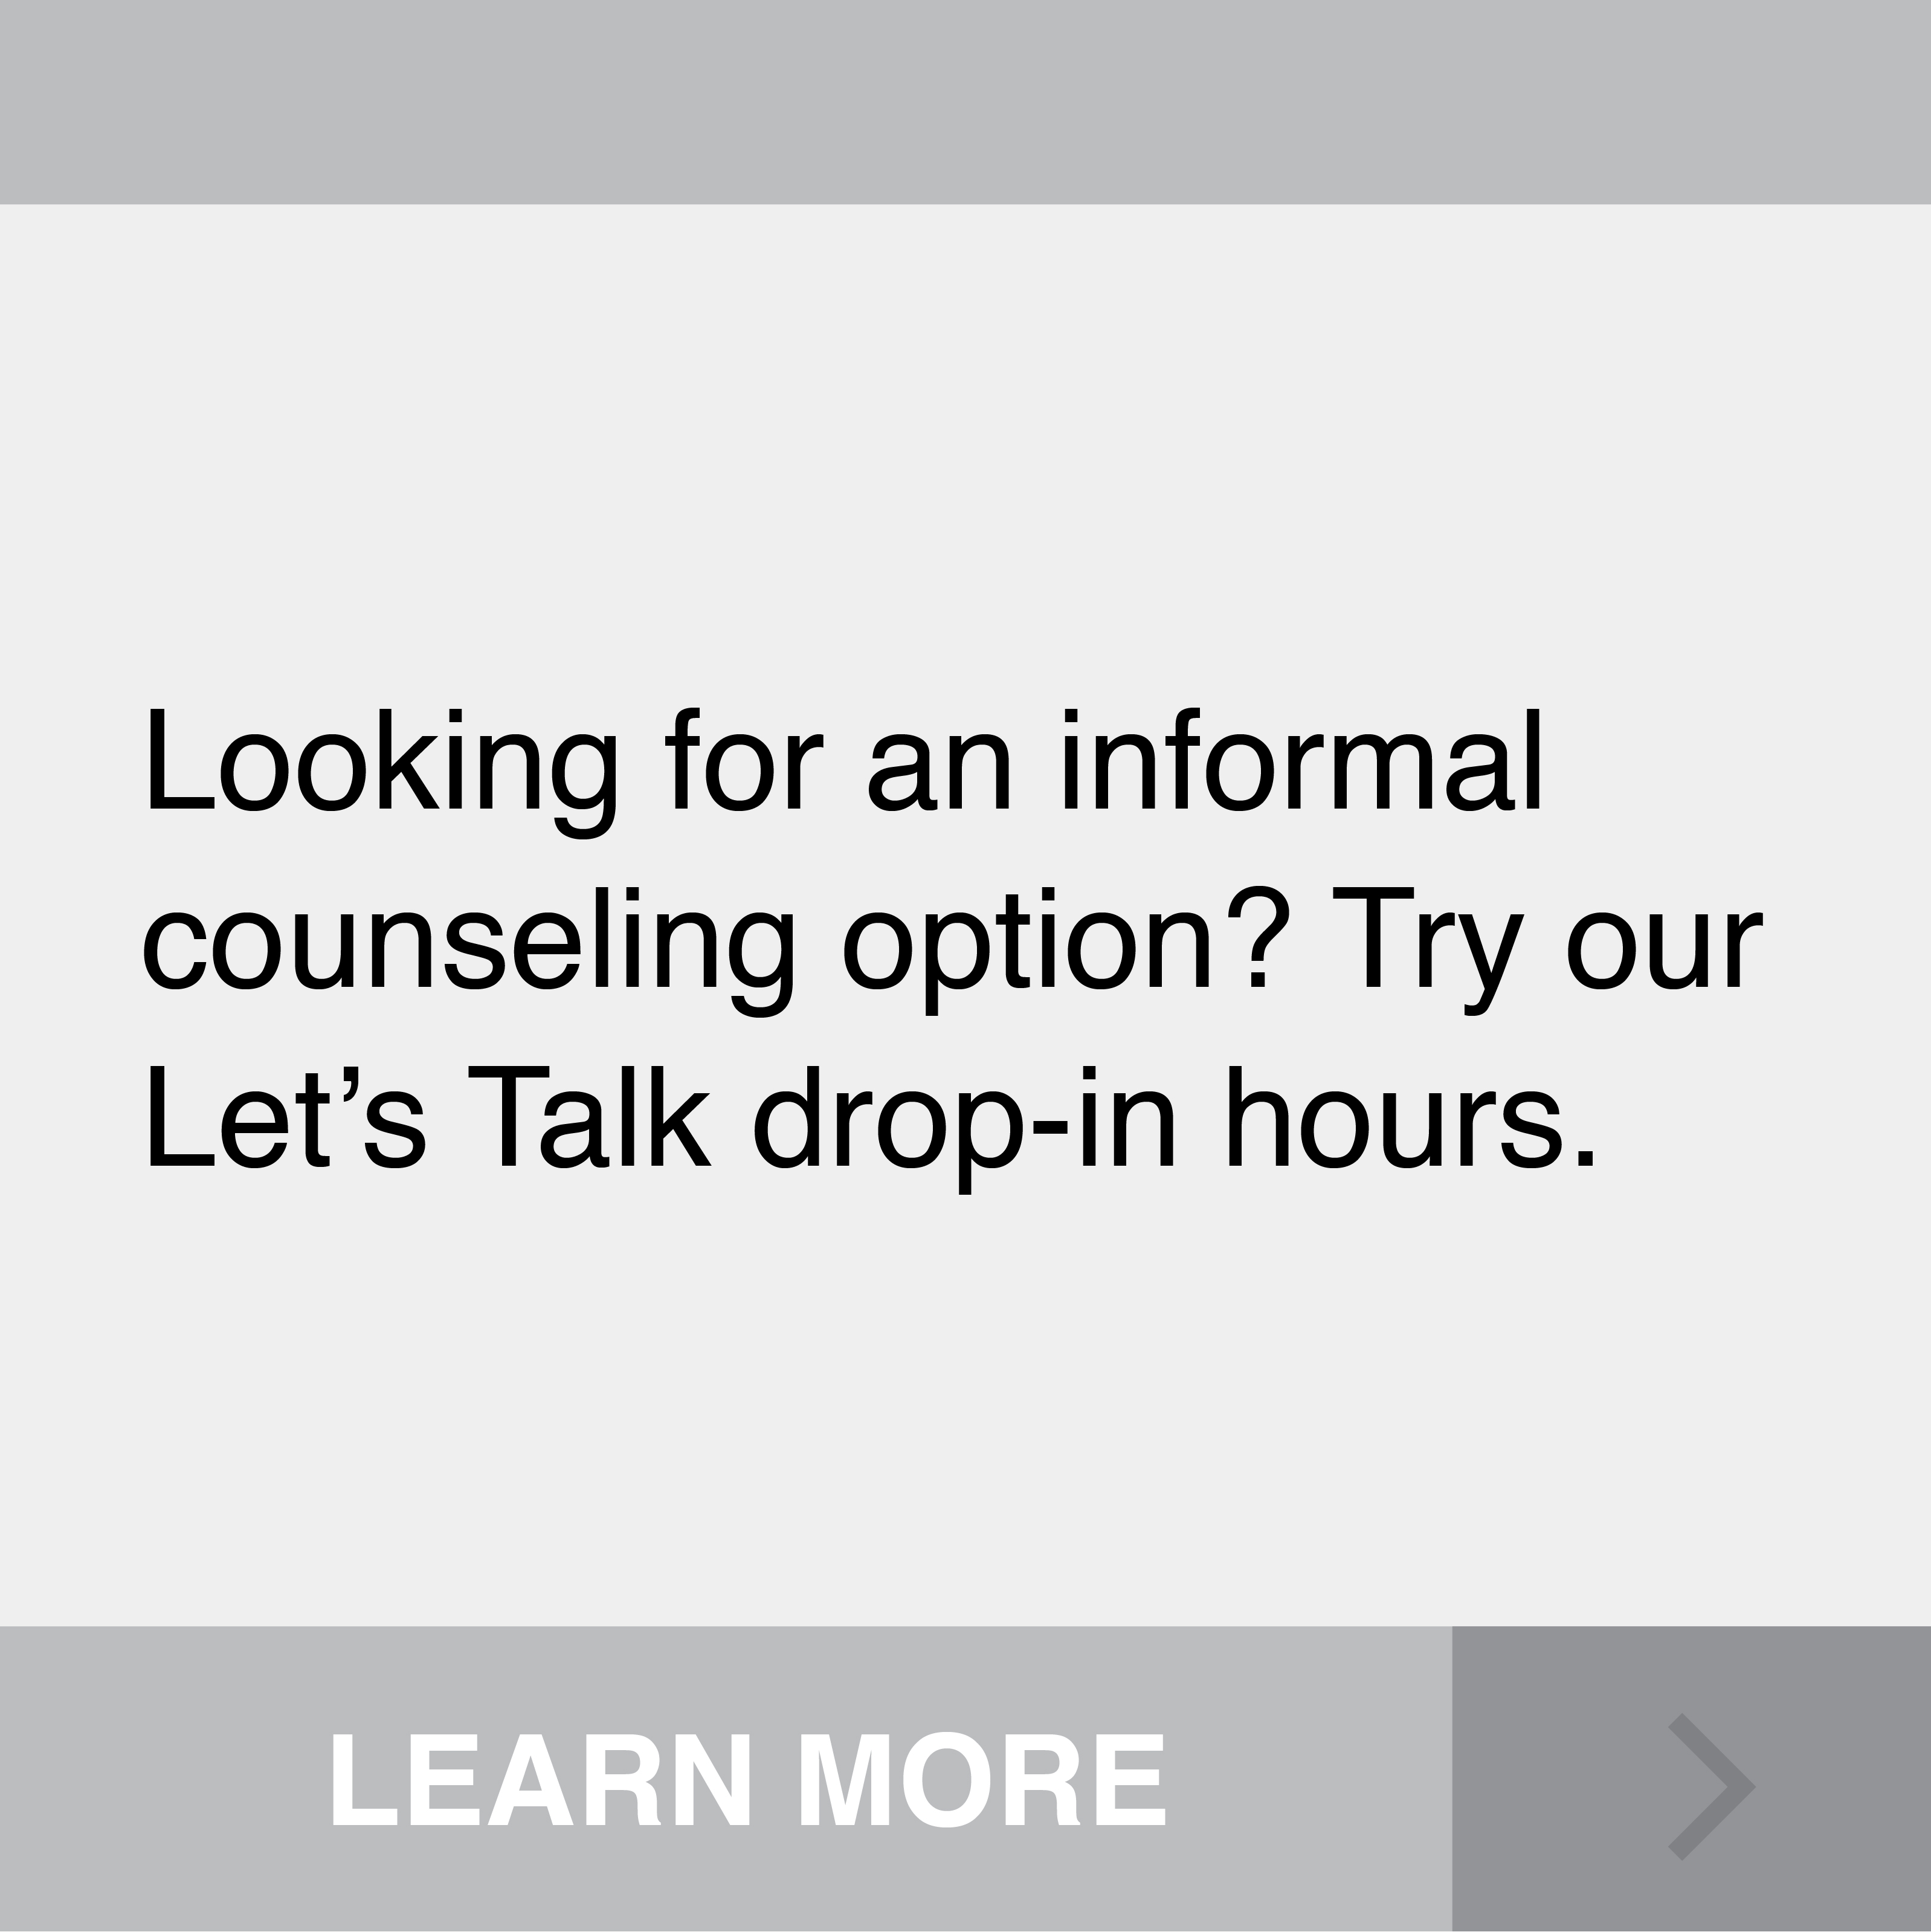 Looking for an informal counseling option? Try our Let's Talk drop-in hours. Click to Learn More.